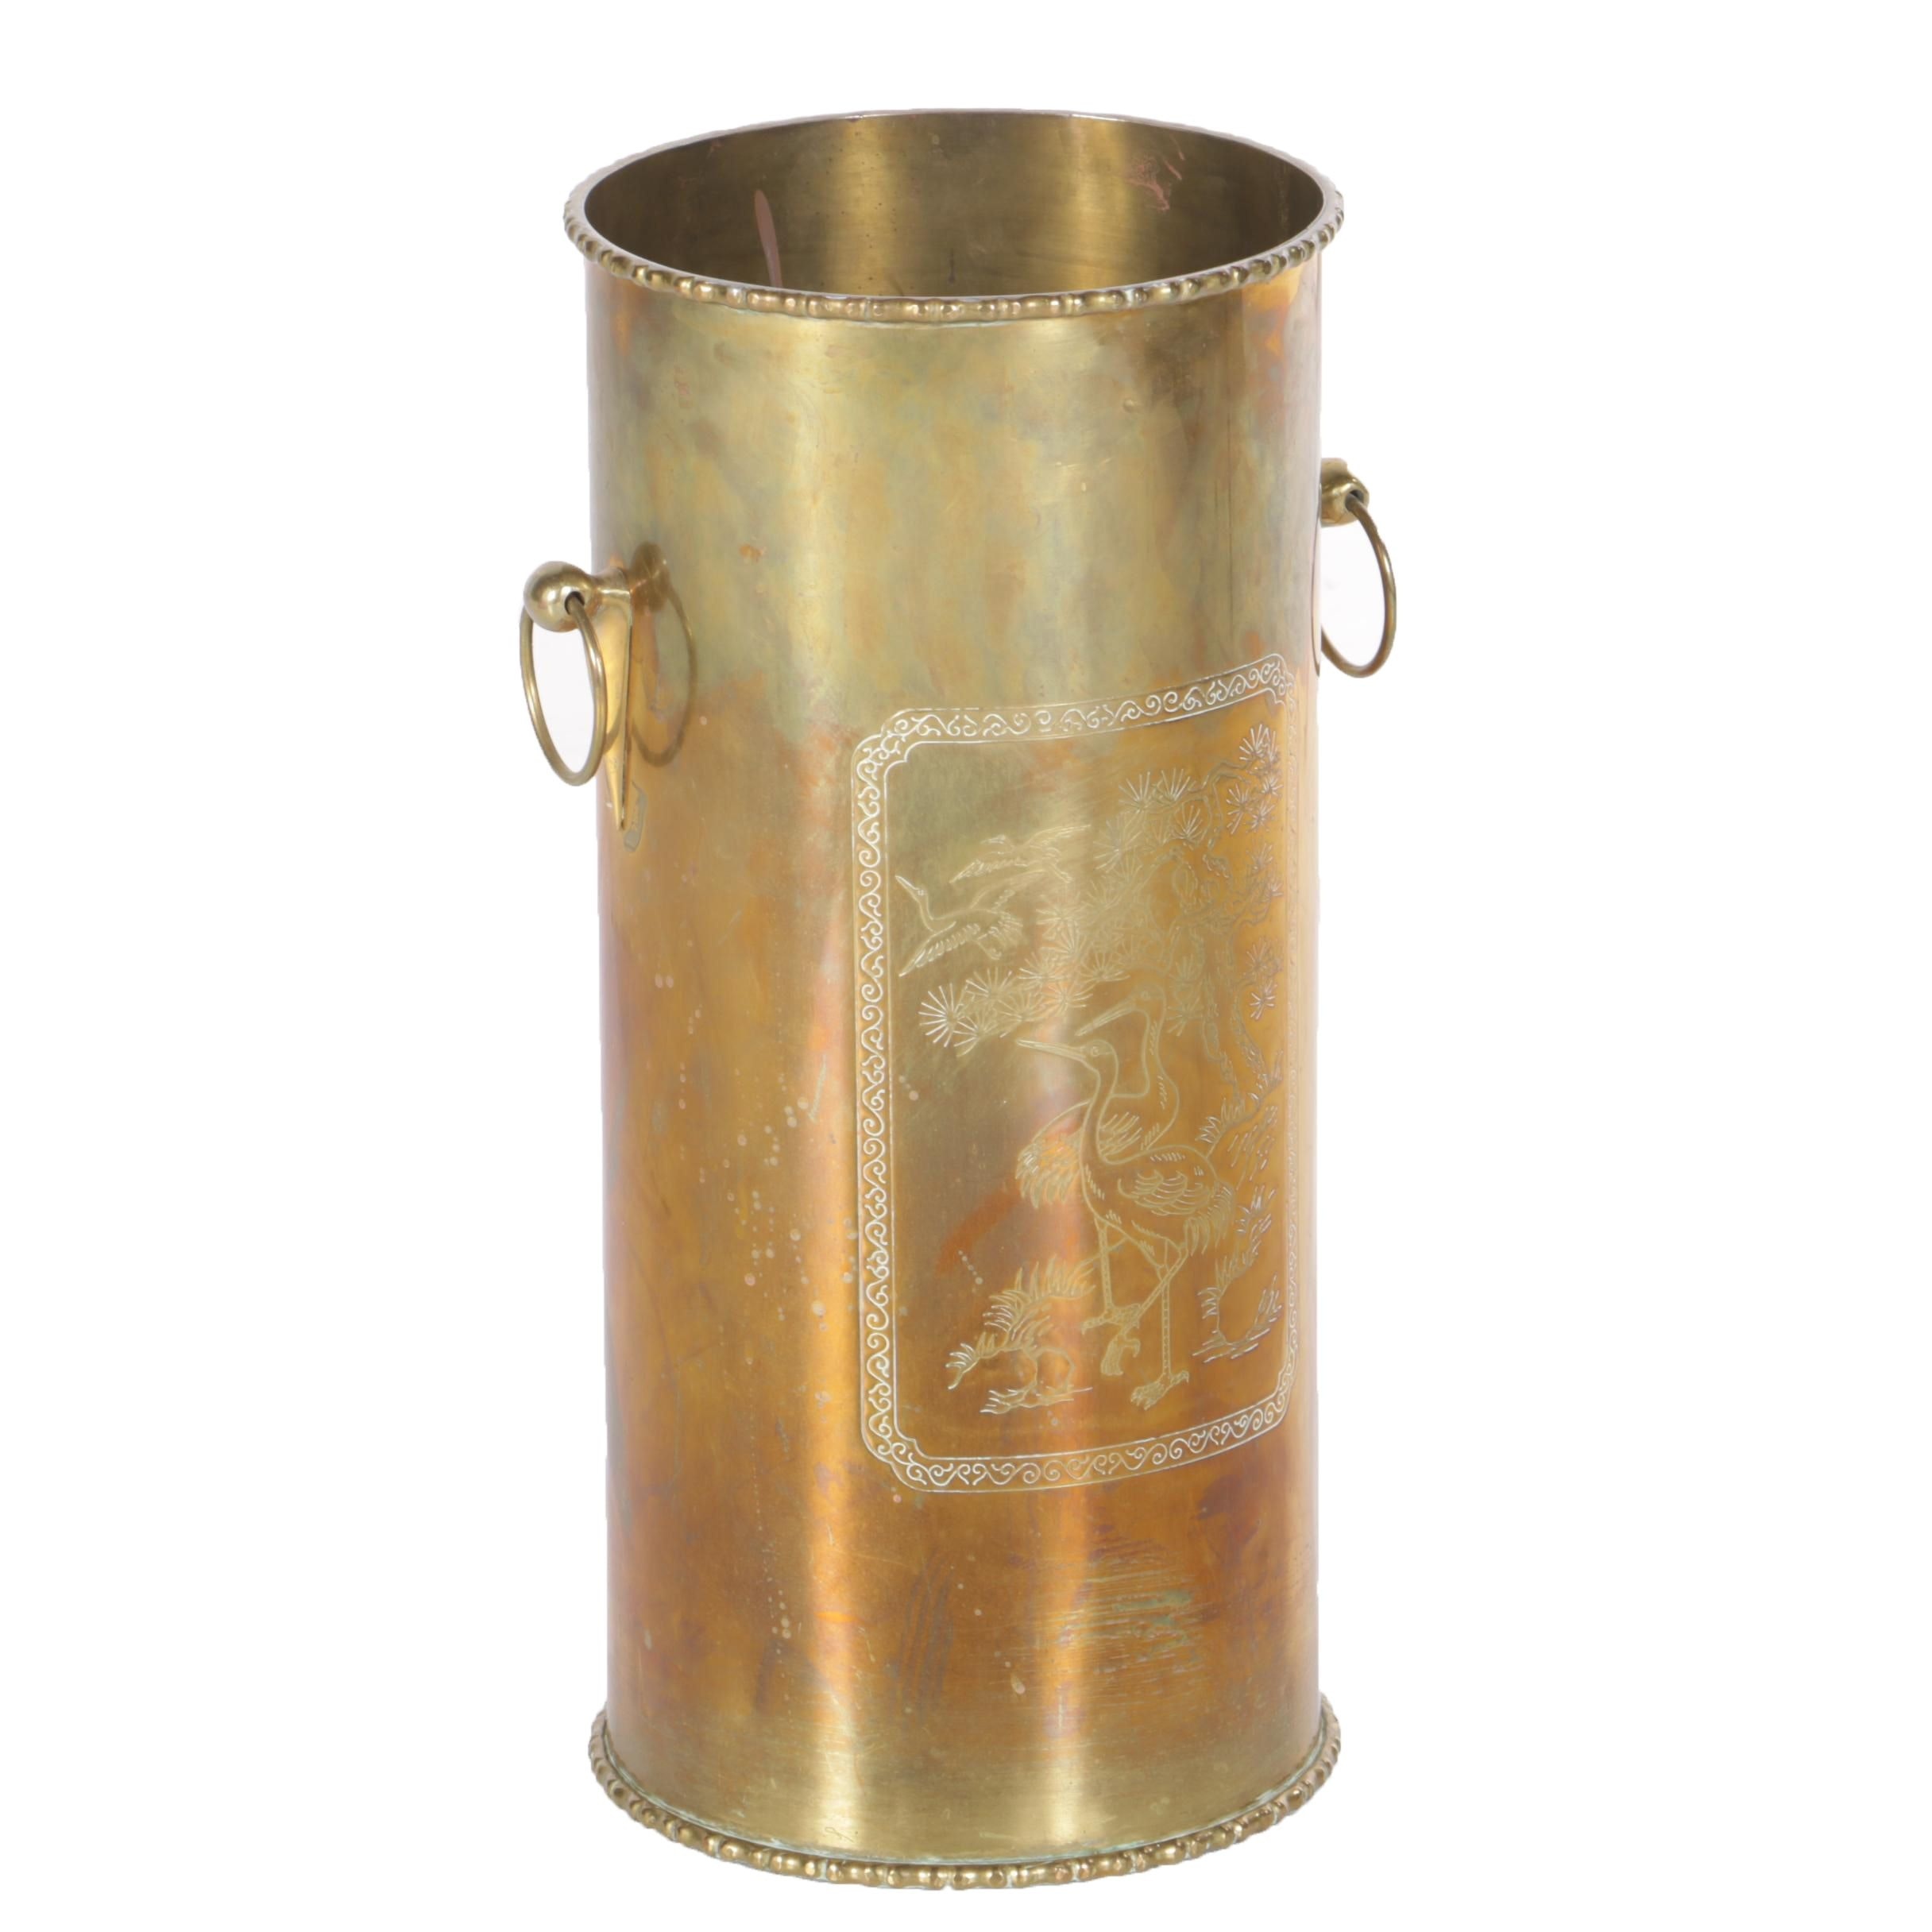 Chinoiserie Decorated Brass Umbrella Stand